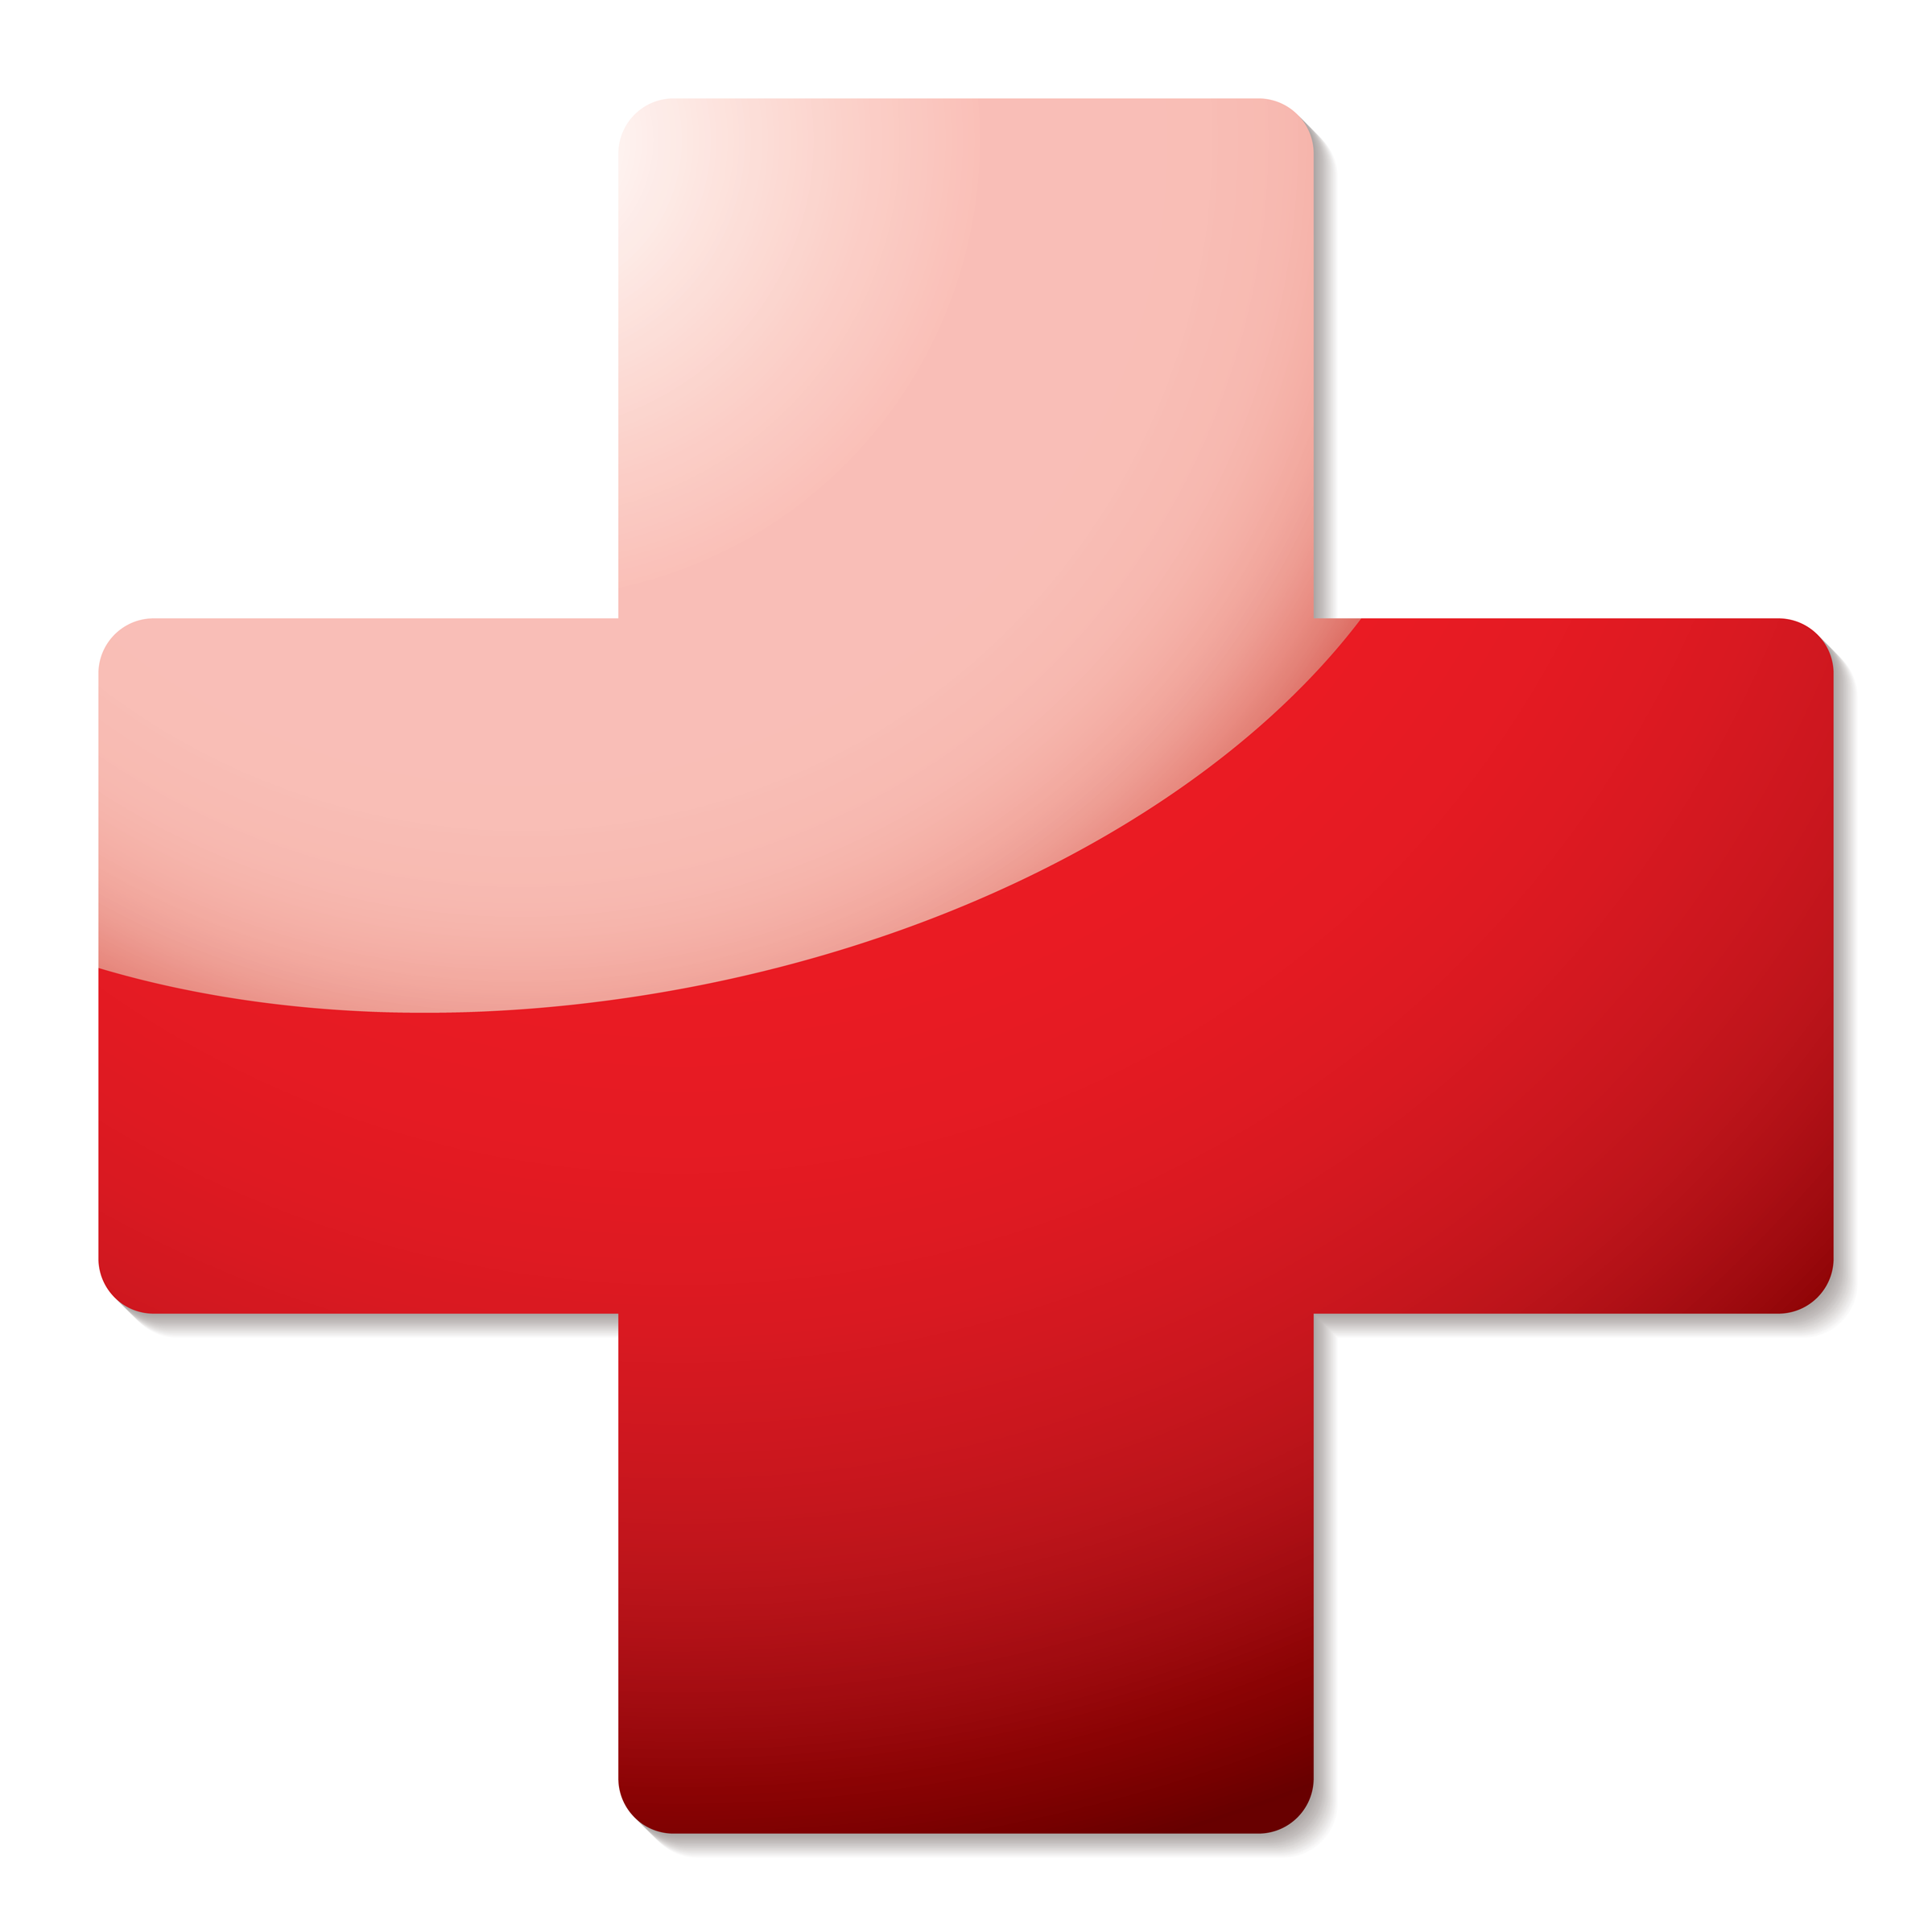 Red Cross Png - ClipArt Best